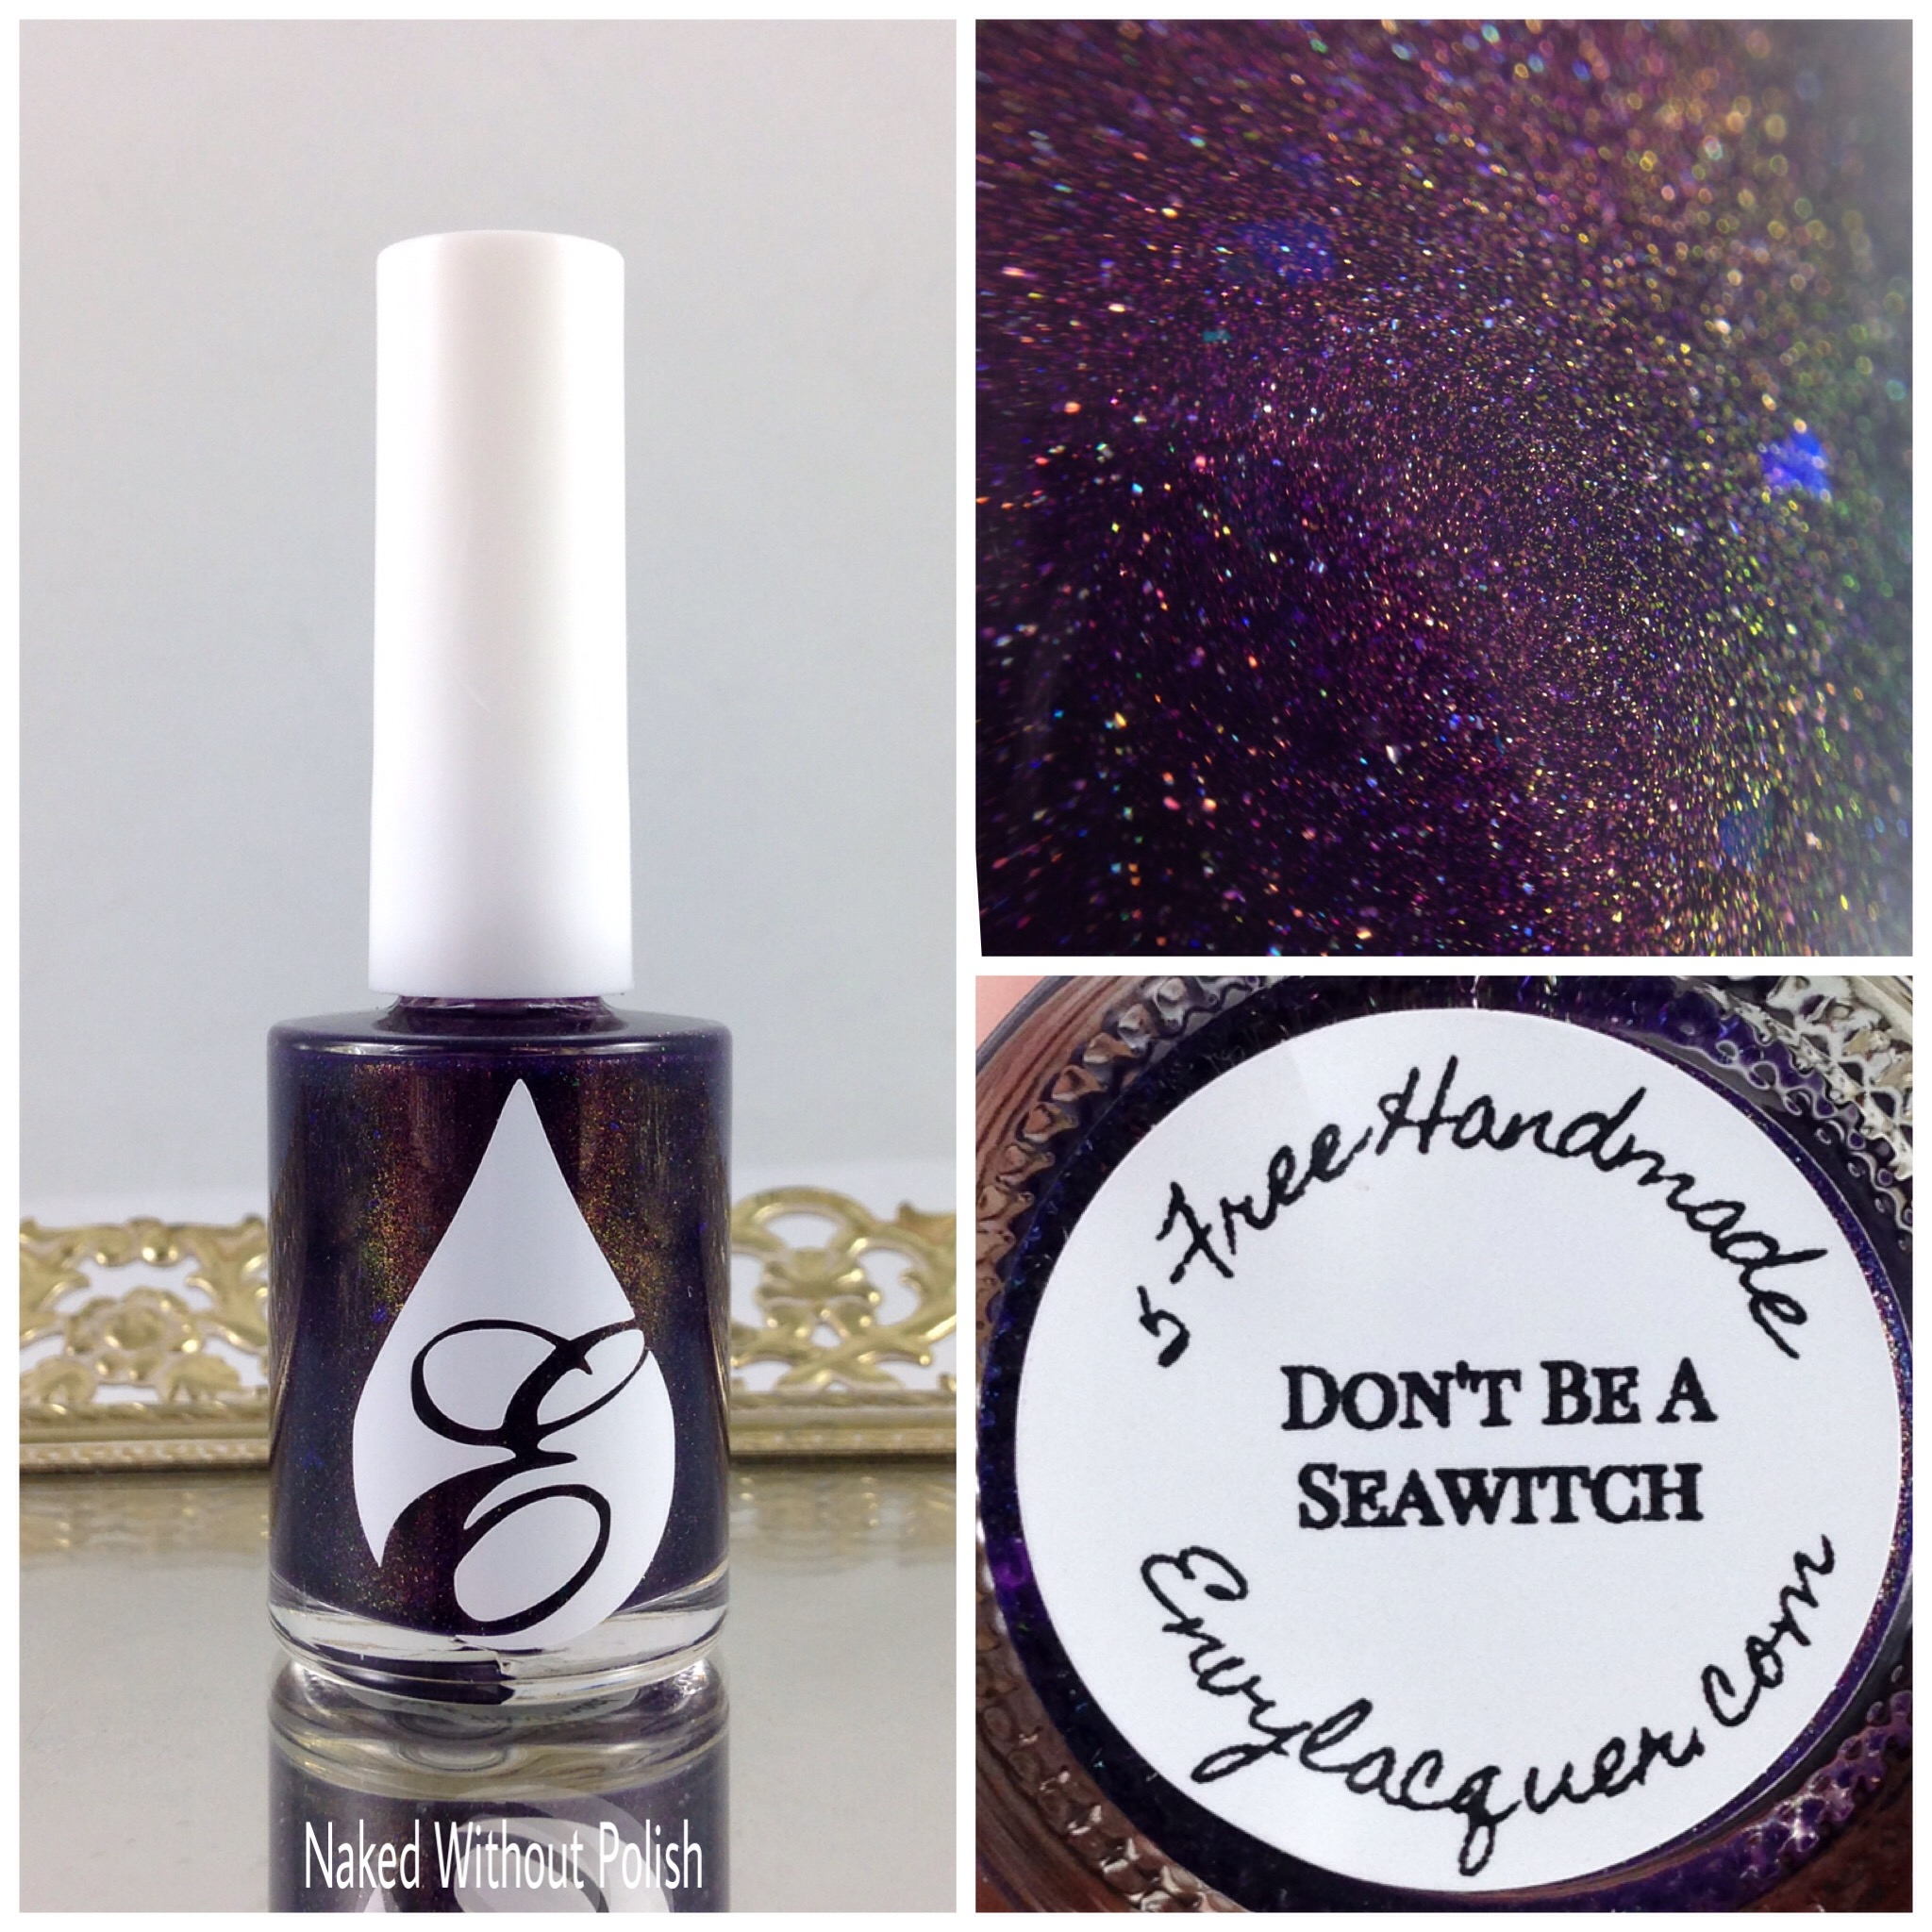 Envy-Lacquer-Dont-Be-a-Seawitch-1